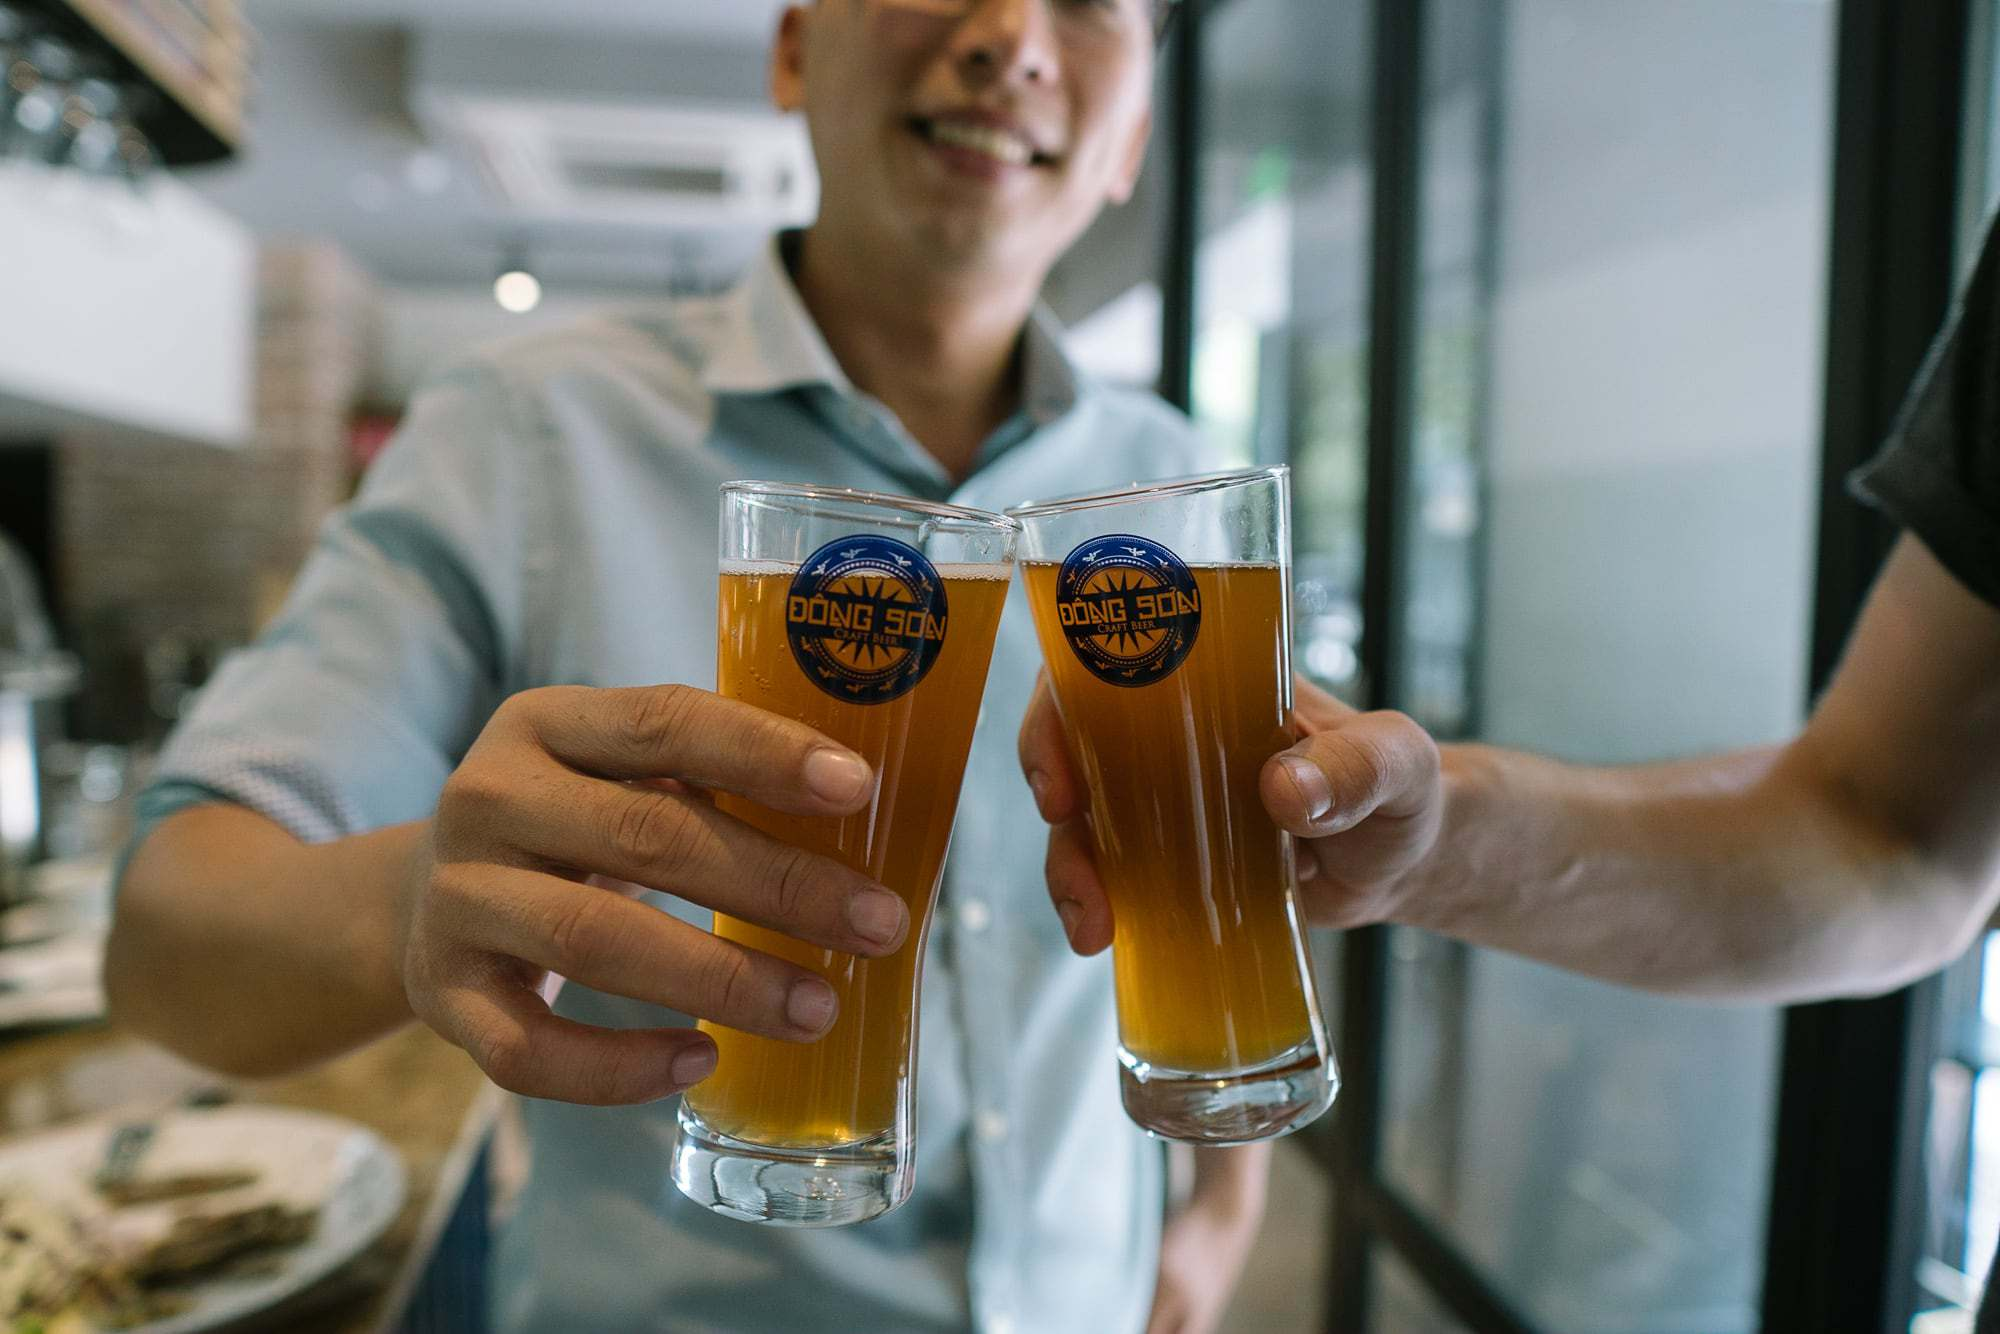 Dong Son Craft Beer: Peeking At The Future Of Vietnamese Craft Beer